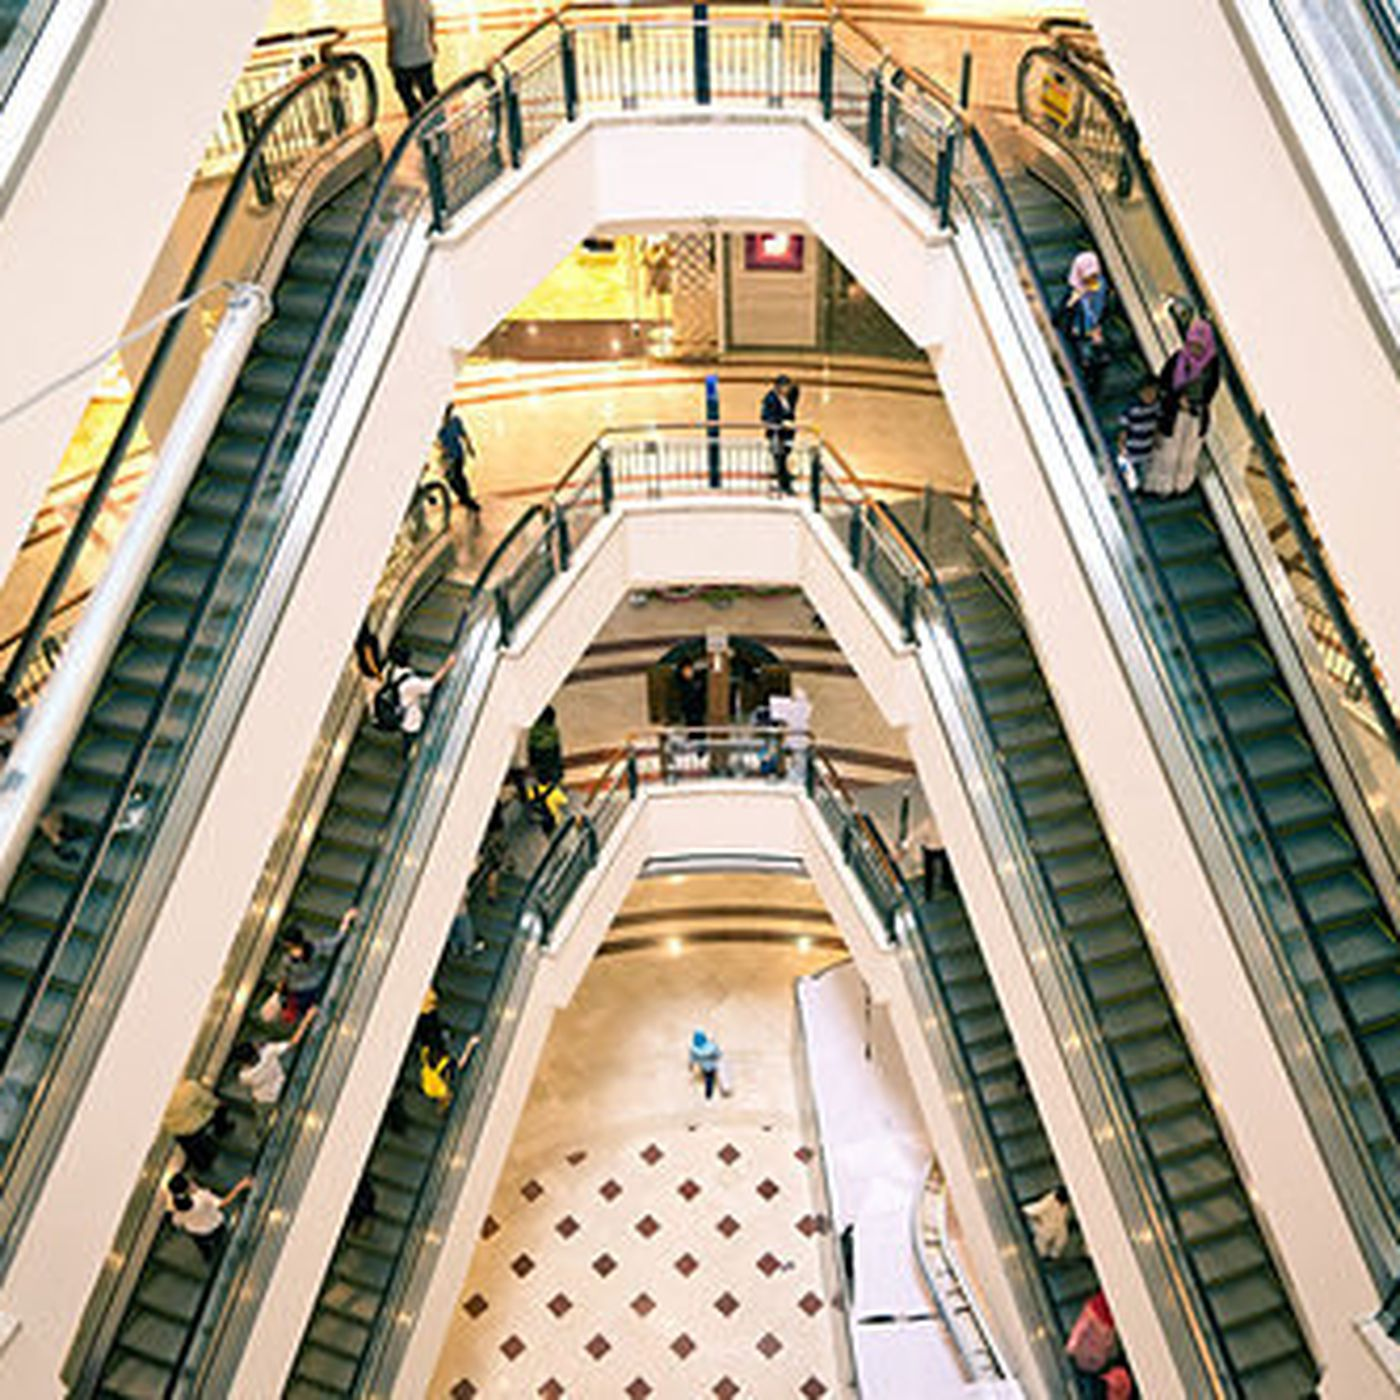 fdd0bffdc3e Where Are They Now  The Great Suburban Mall Store Demise - Racked